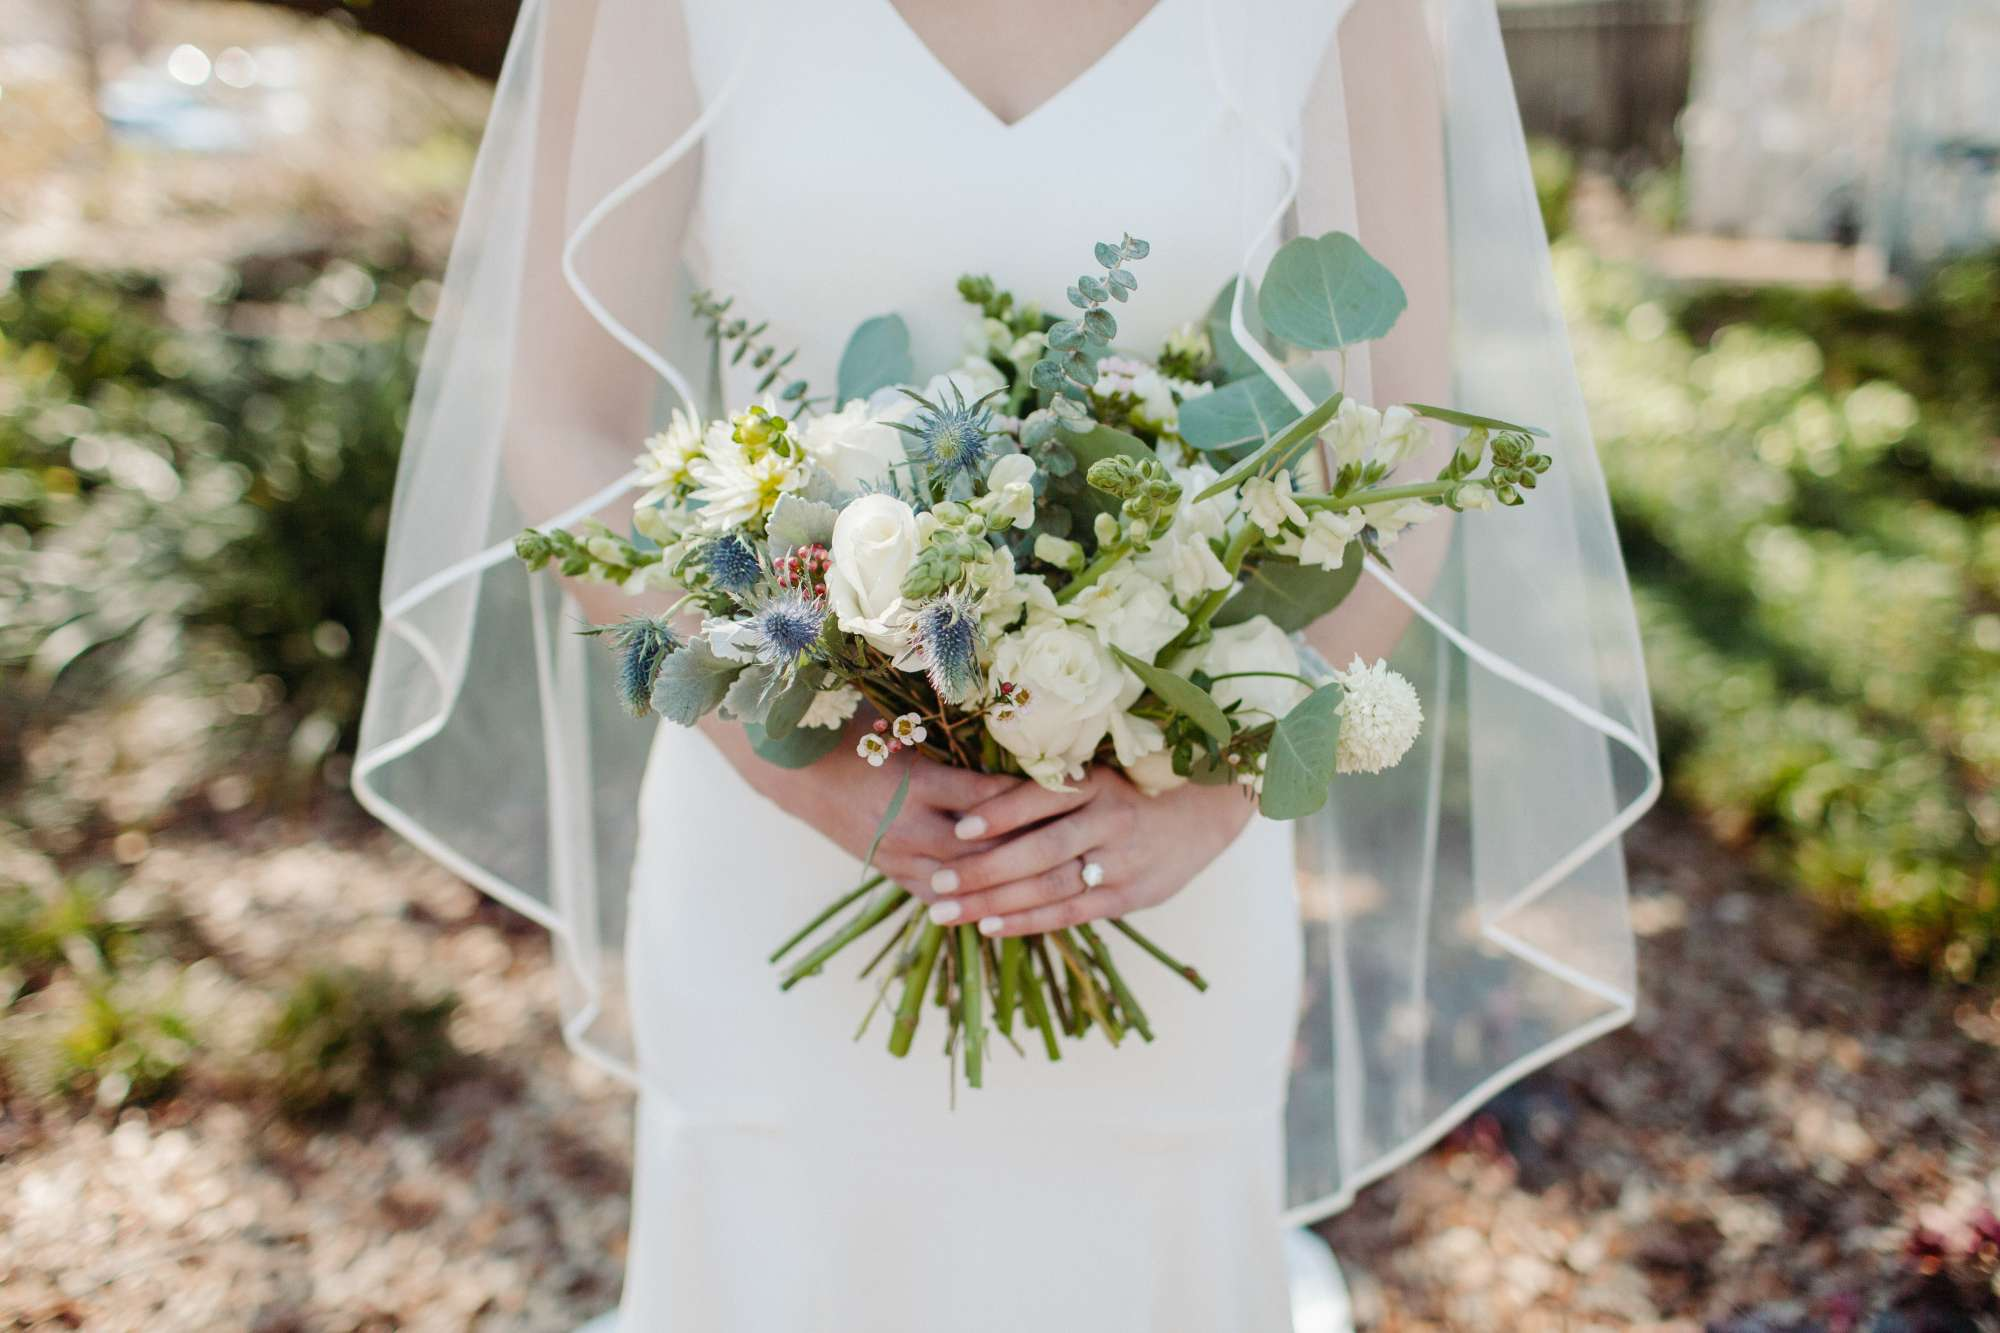 Bride Holding Boquet of Flowers